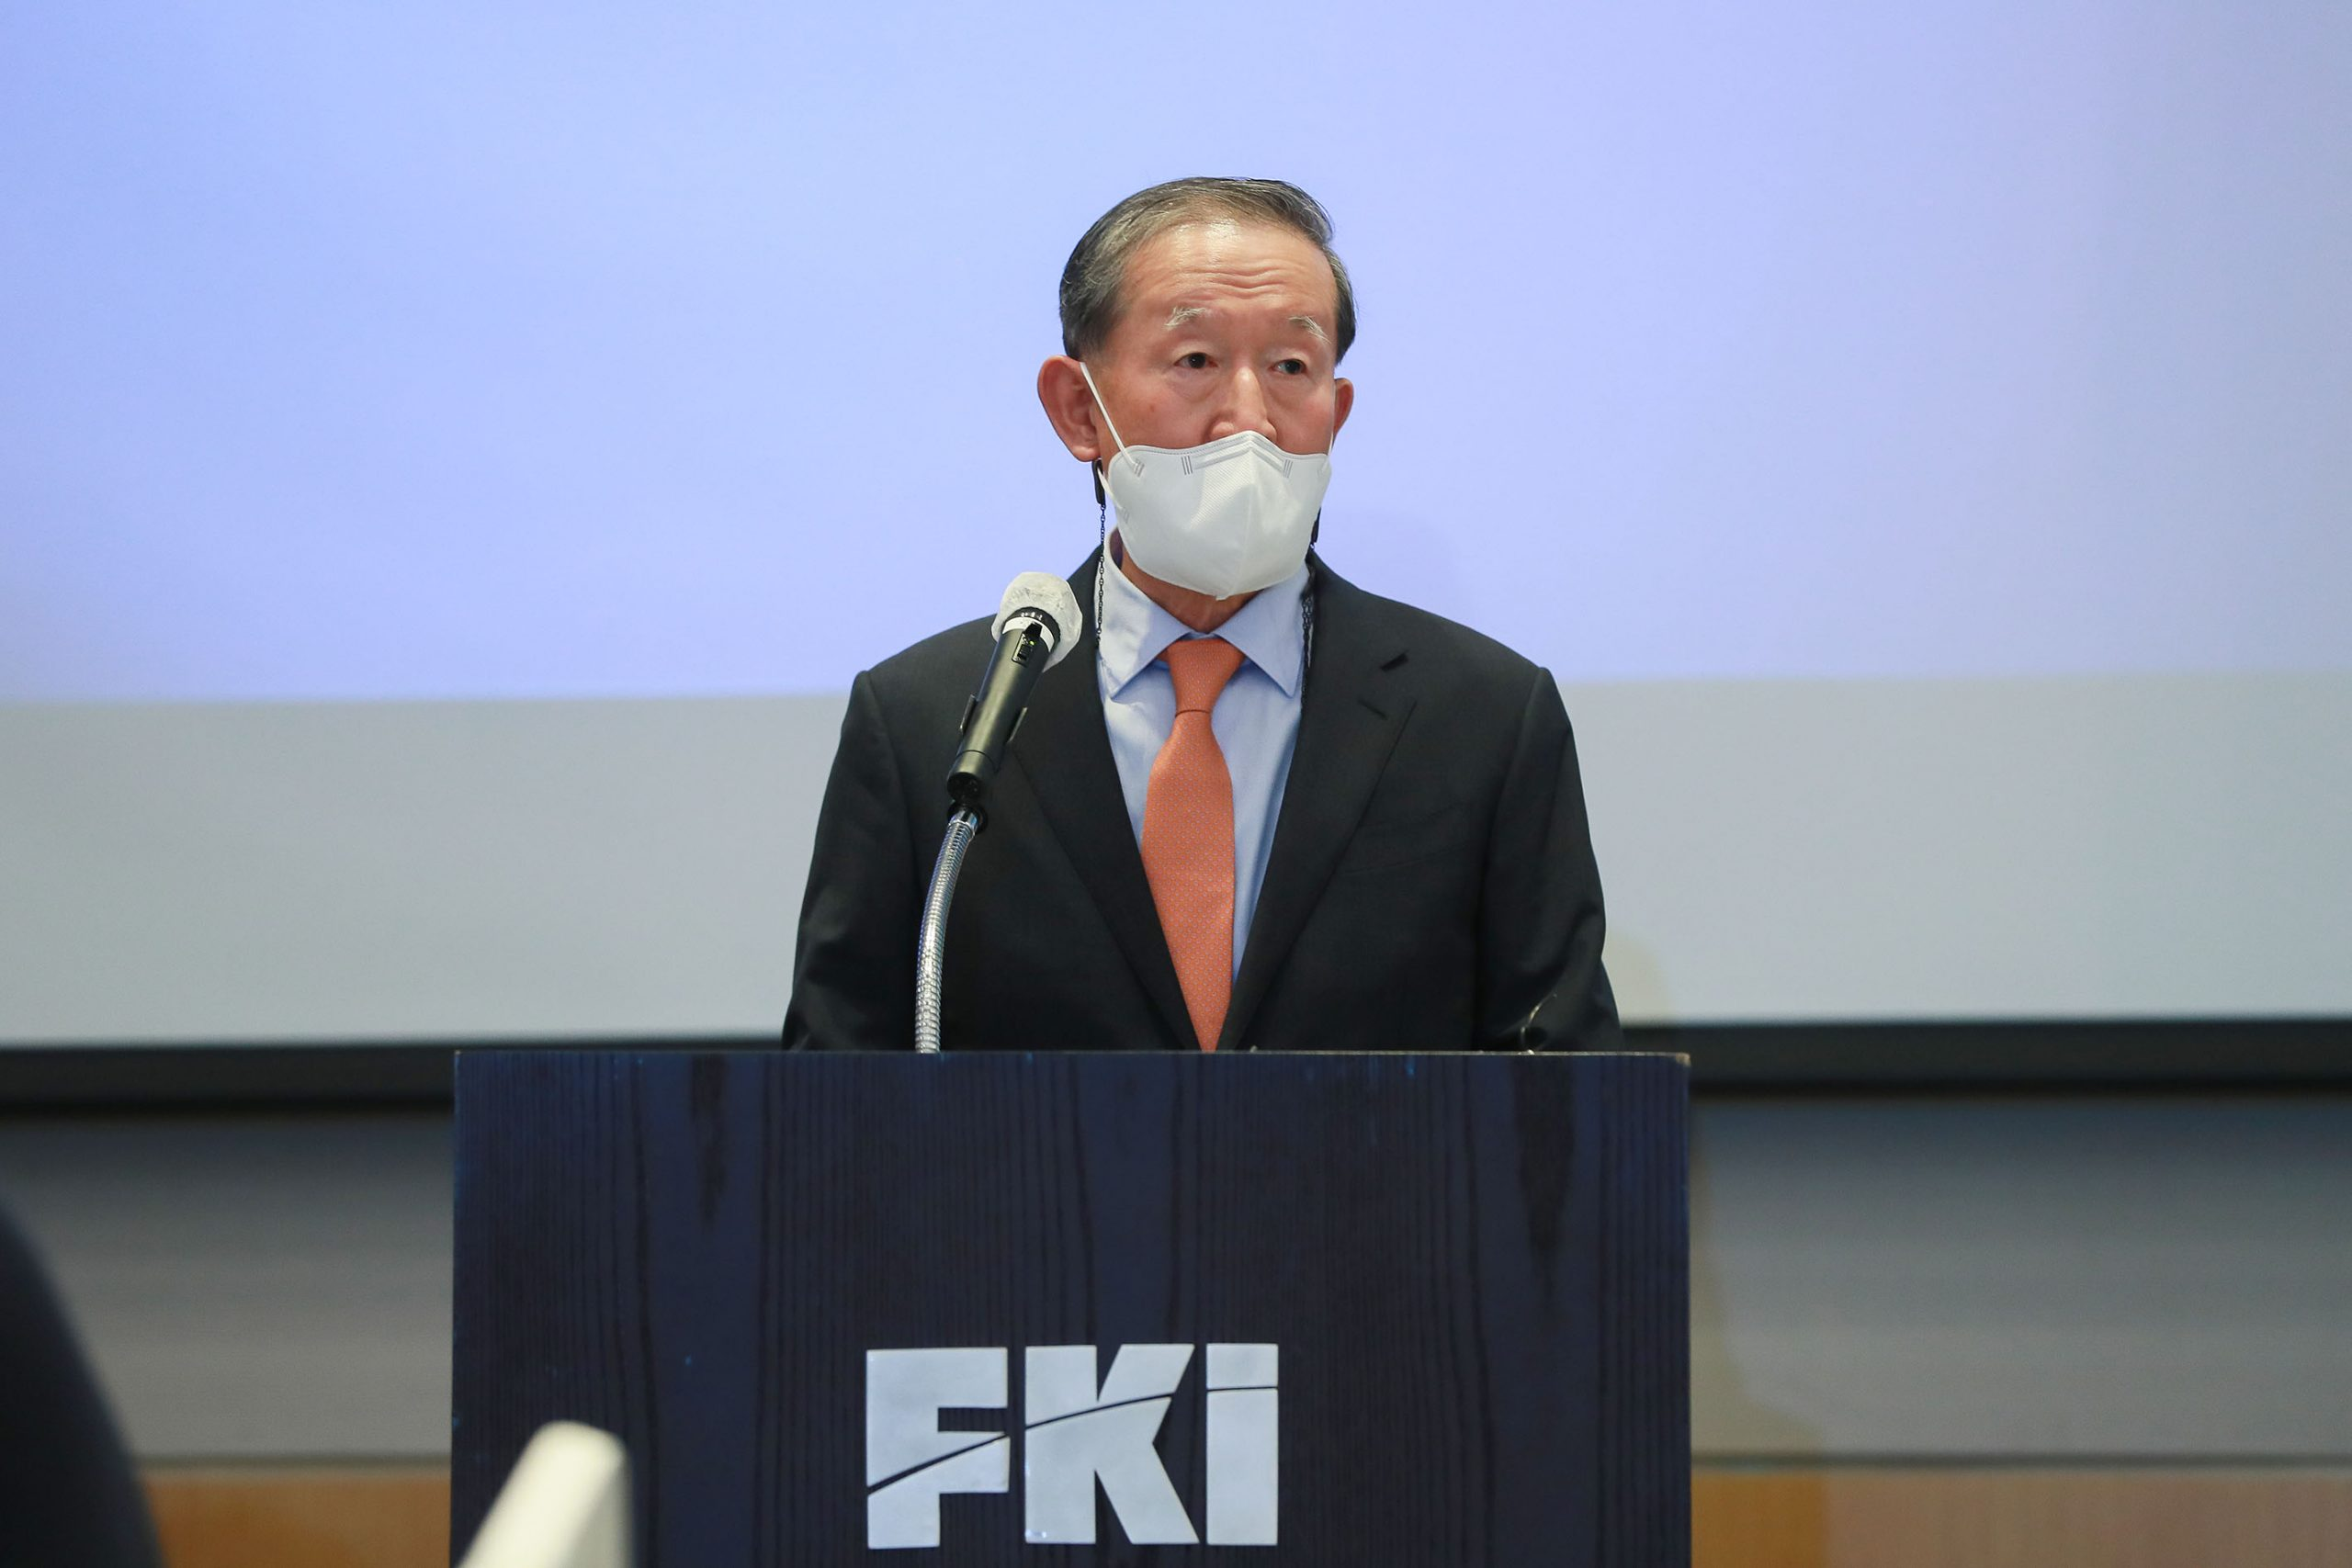 FKI chief reappointed to lead biz lobby for another 2 years